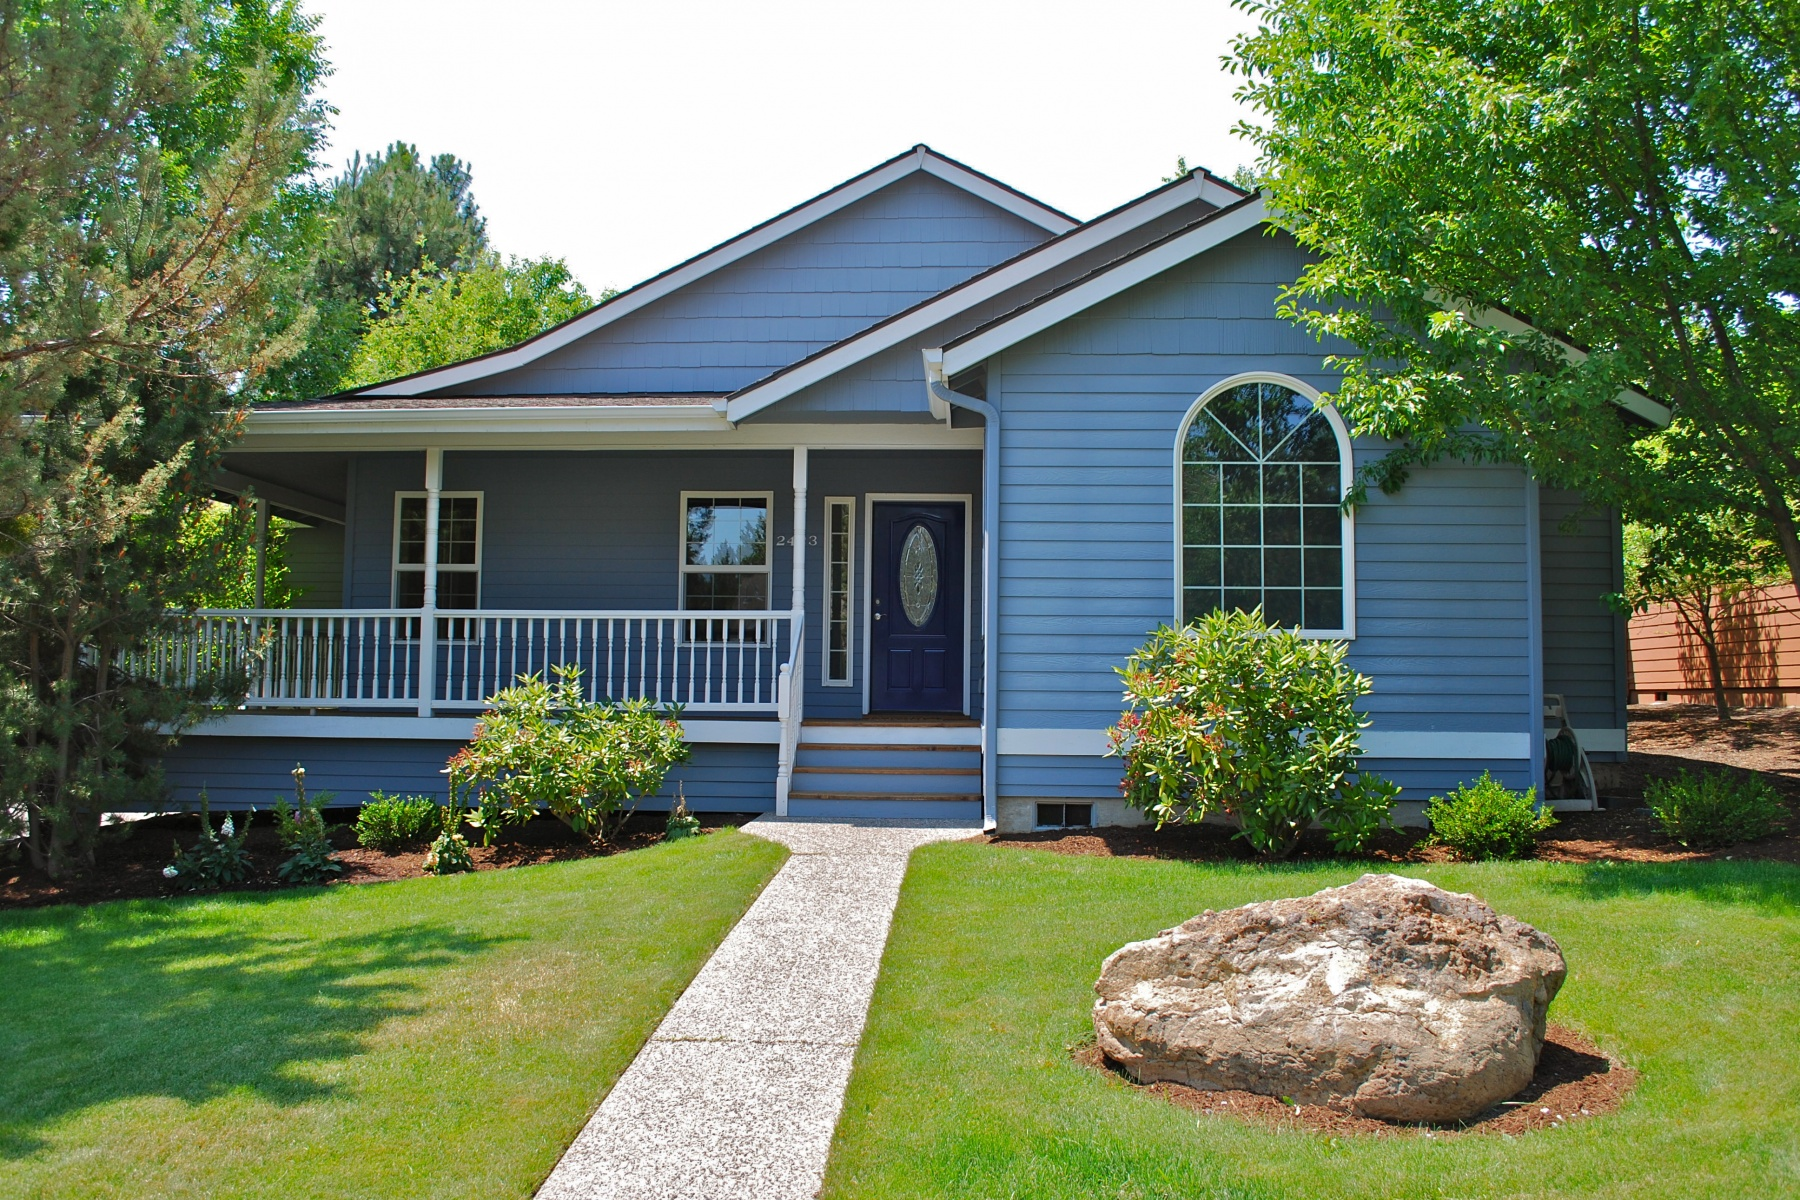 Single Family Home for Sale at 2423 NW Hemmingway St Bend, Oregon 97701 United States